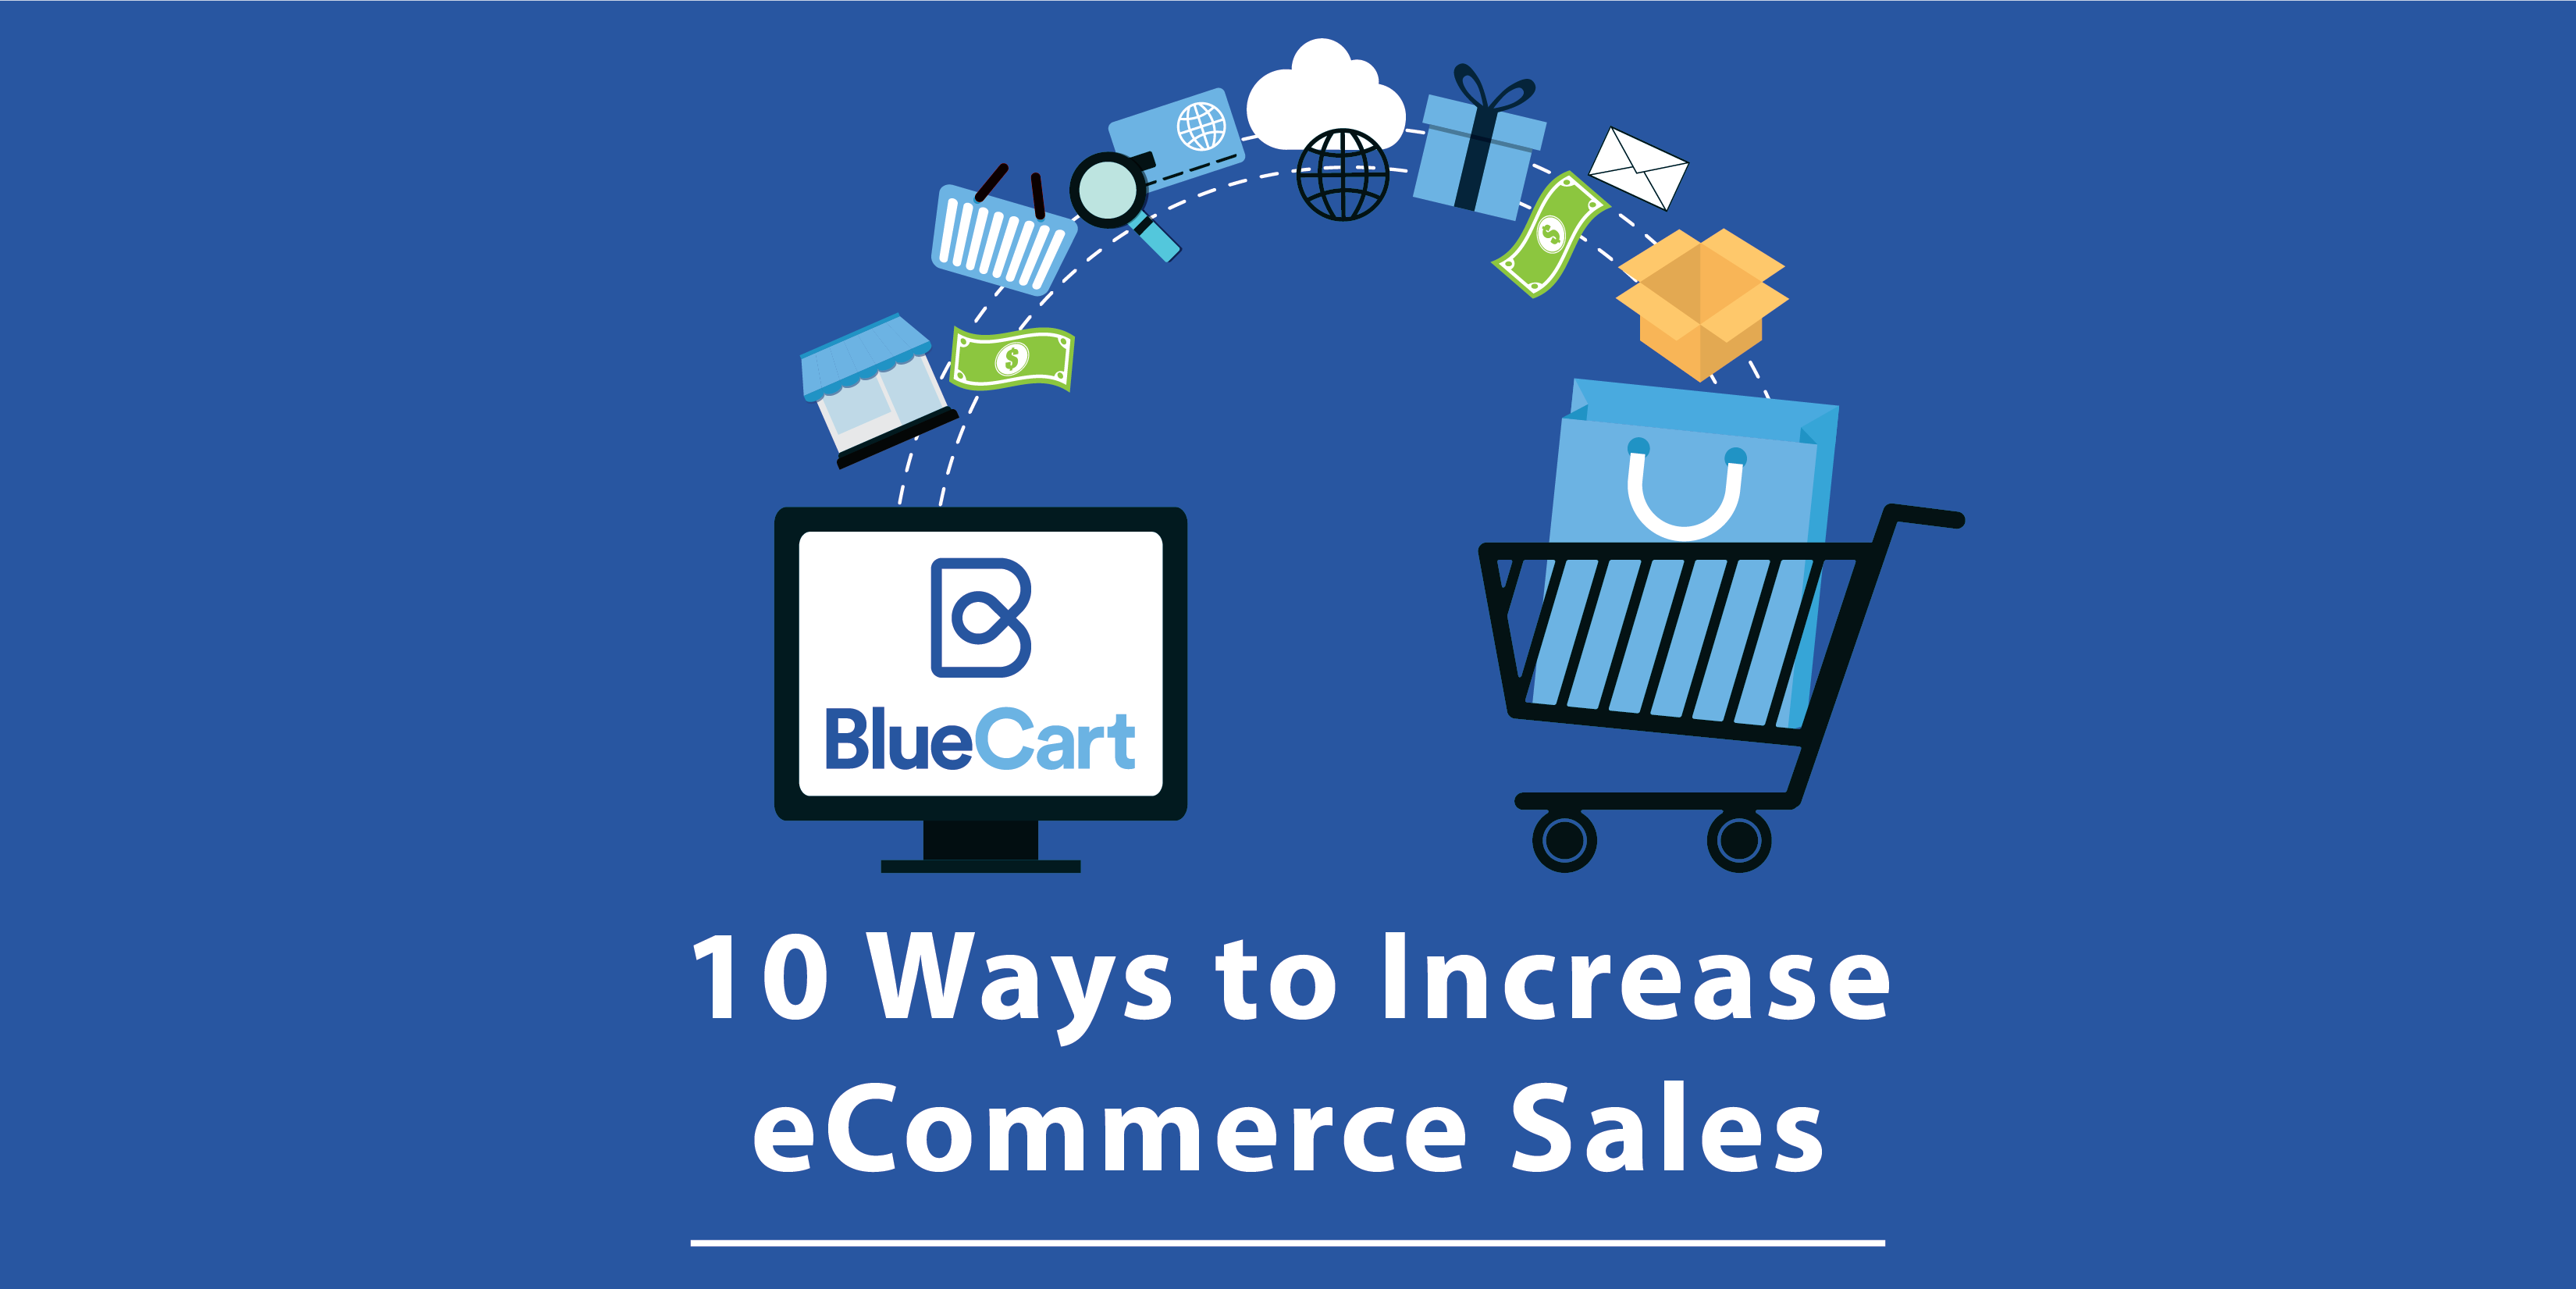 10 Ways to Increase eCommerce Sales